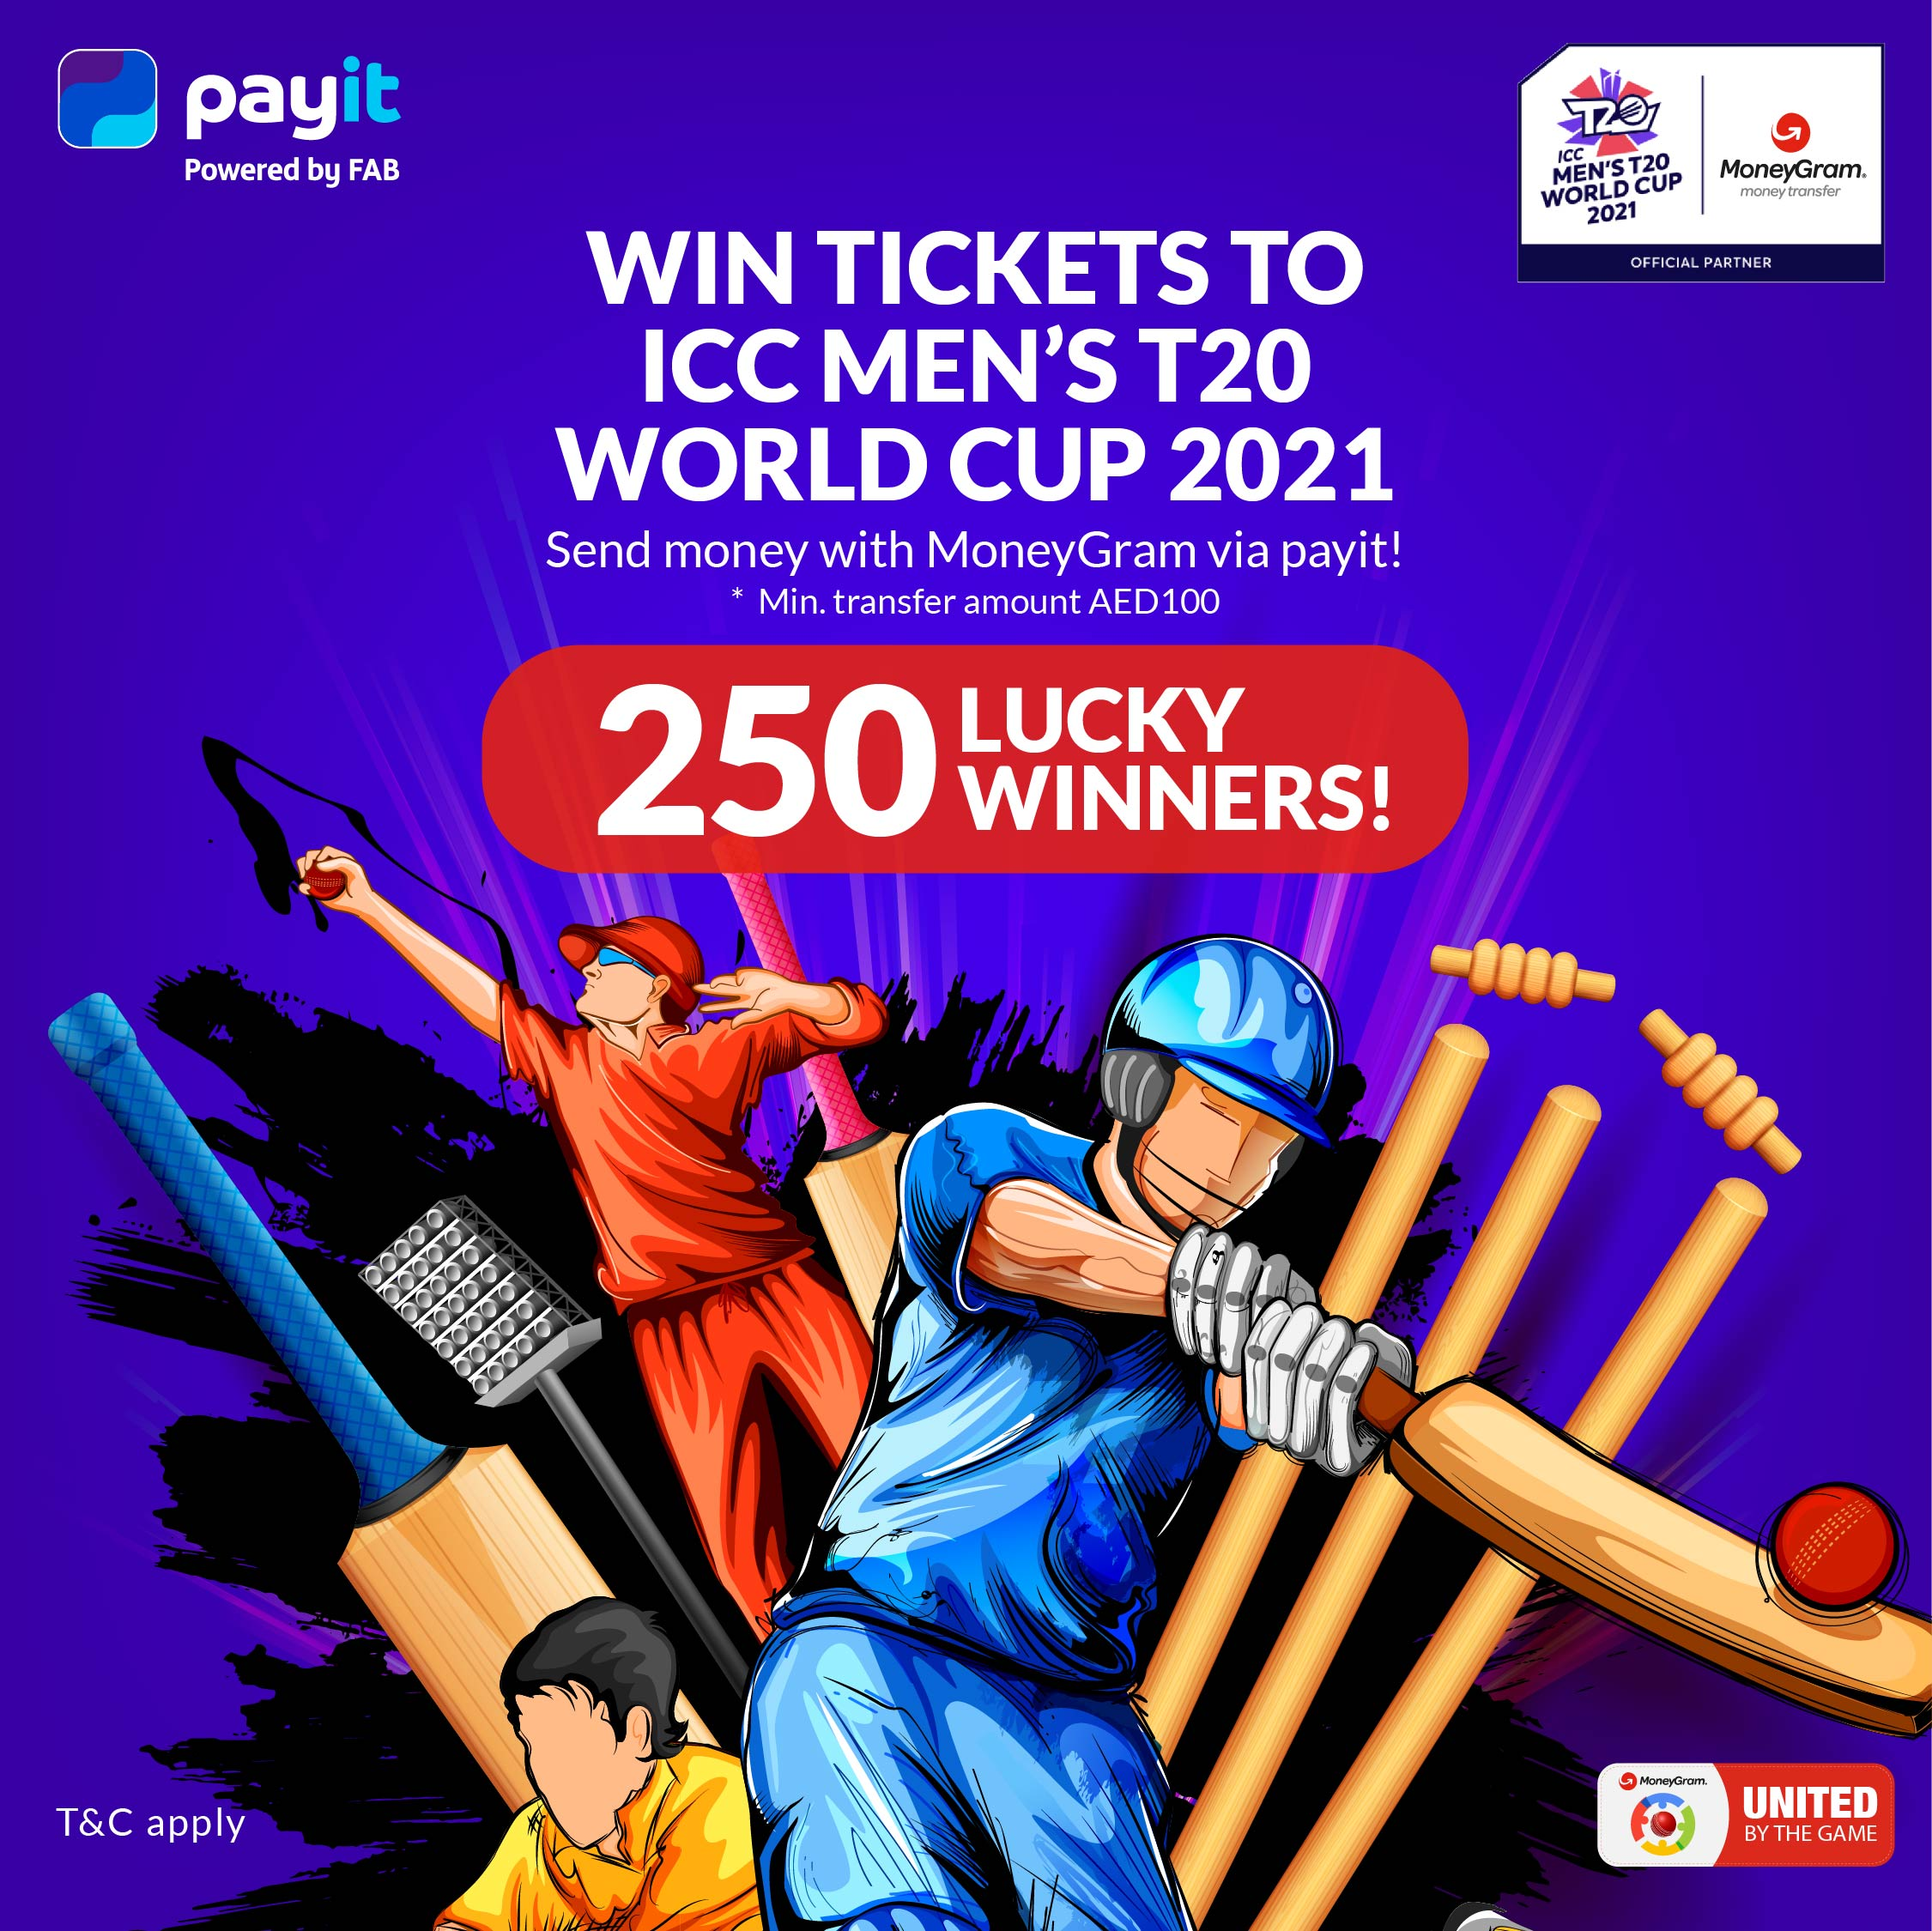 USE MoneyGram PAYIT AND Win a Ticket to Watch Live Cricket